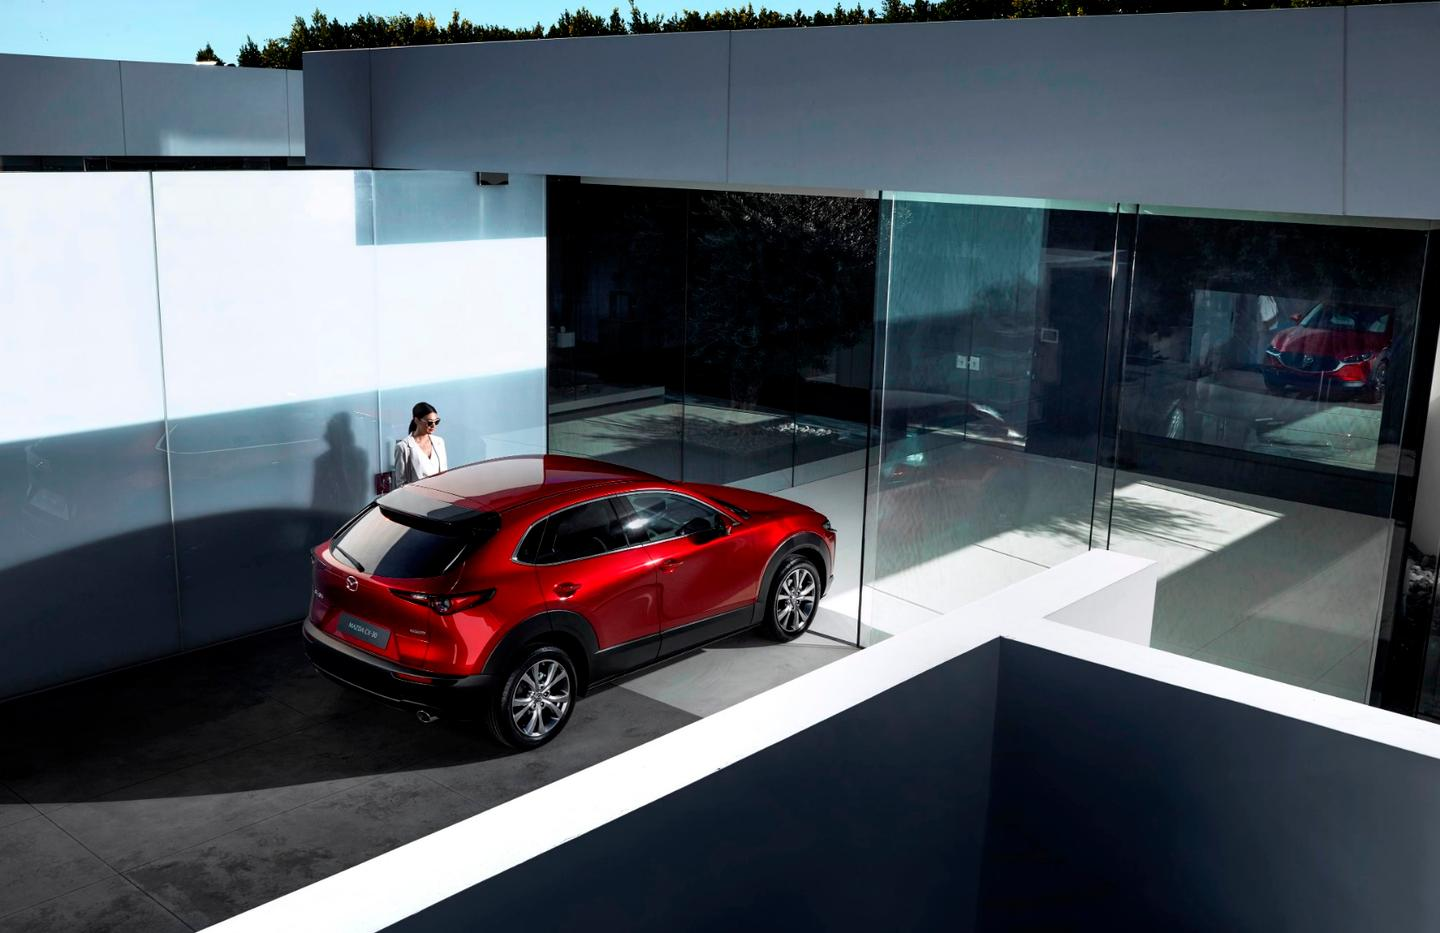 Mazda has not stated pricing, performance, or fuel economy numbers for the CX-30, nor has itreleased an anticipated sale date for the new crossover